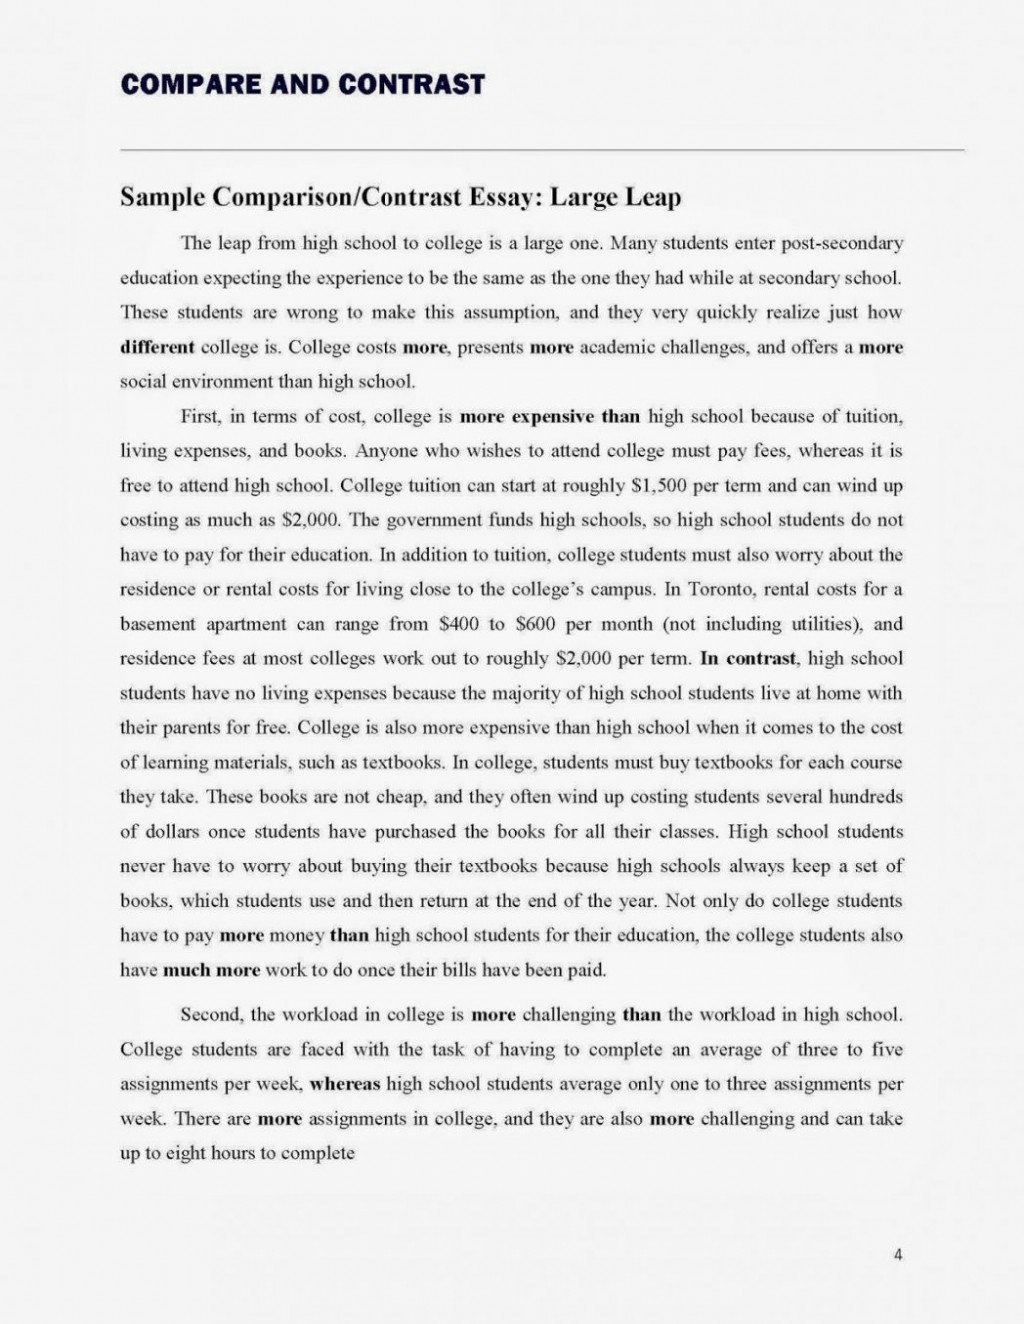 013 Essay Example Oedipus Rex Questions The Giver Topics Virginia Tech 1048x1356 Phenomenal Essays Reddit Prompts 2018 Sat Requirements Large